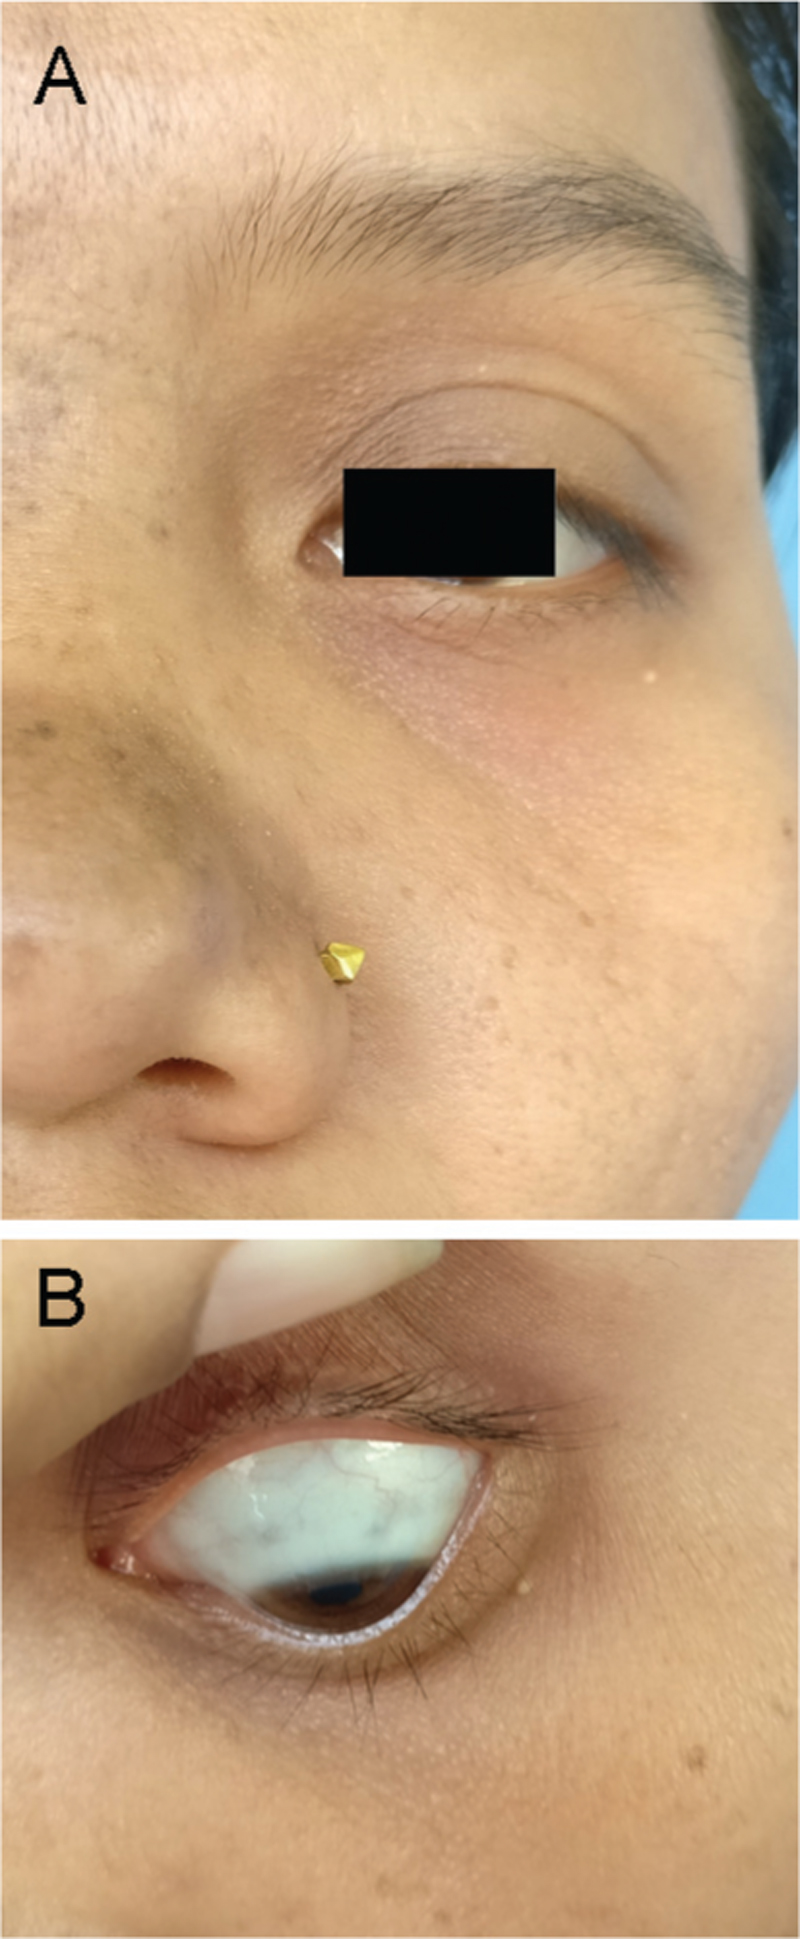 Figure 2: (a) A few scattered brown macules on alae and dorsum of left nose and left malar region. (b) A few bluish discolored spots on the sclera of left eye